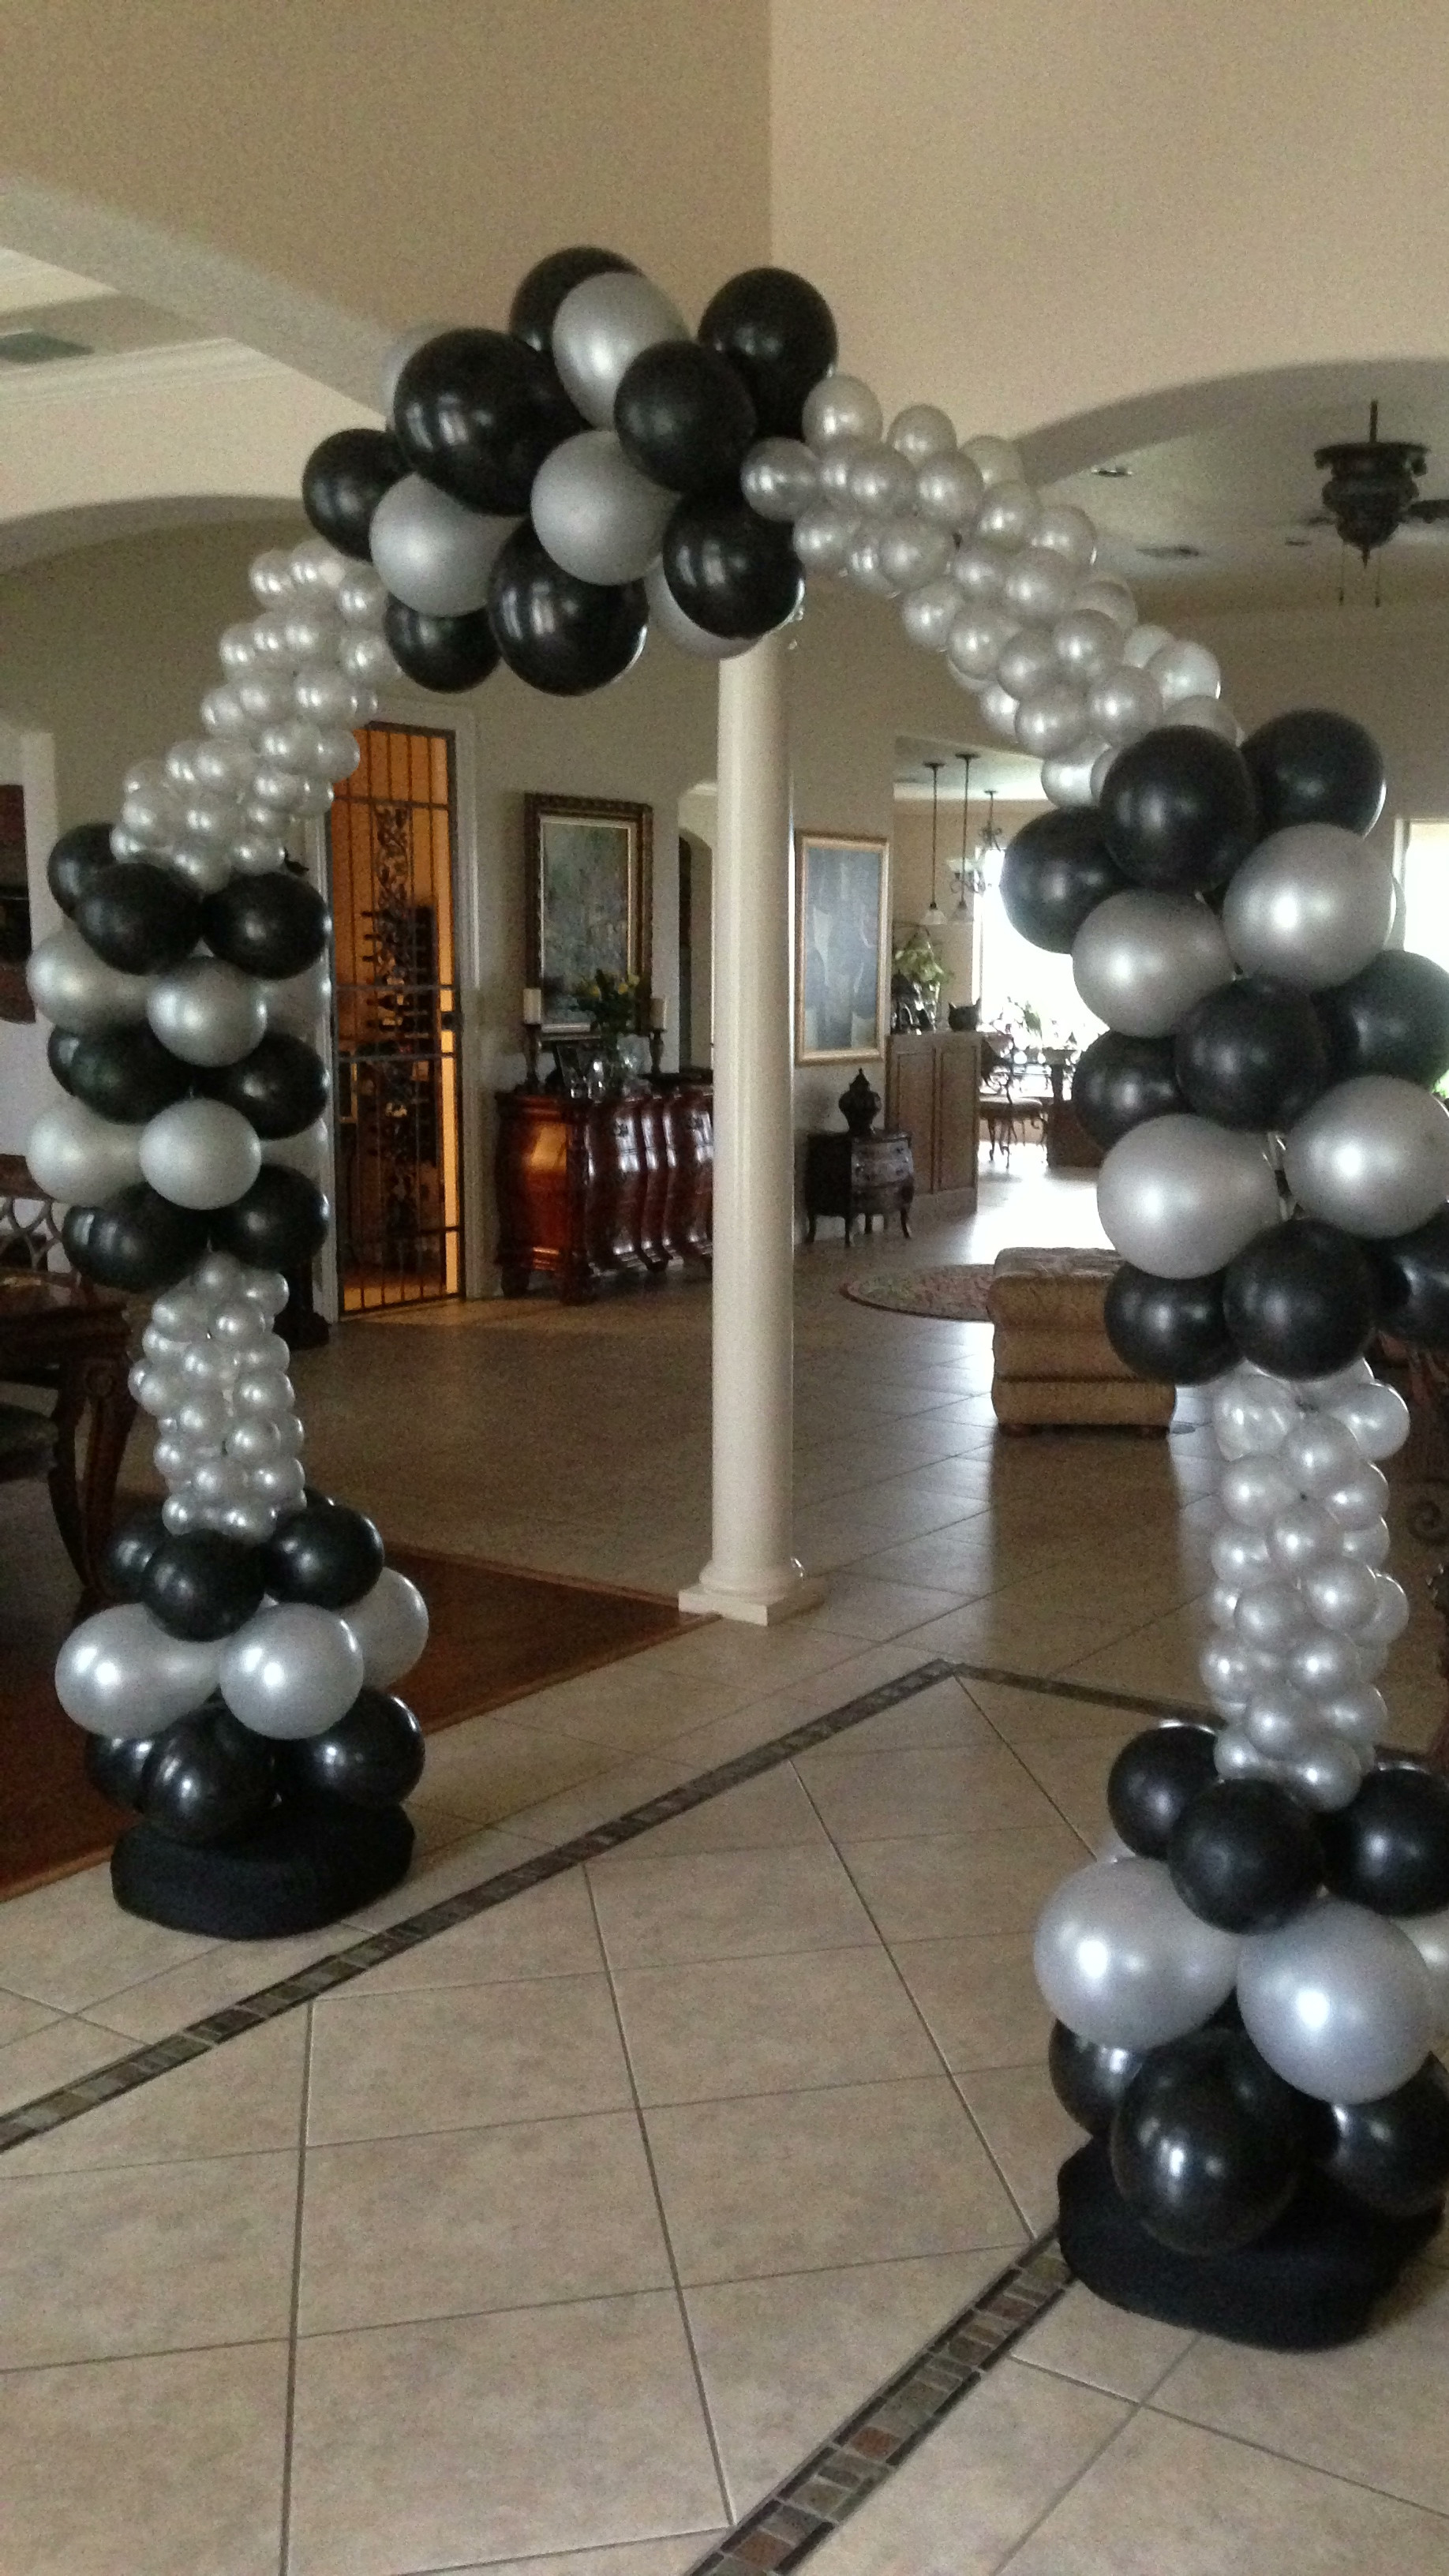 Balloon Arches Trade Shows And CorporateCompany Events